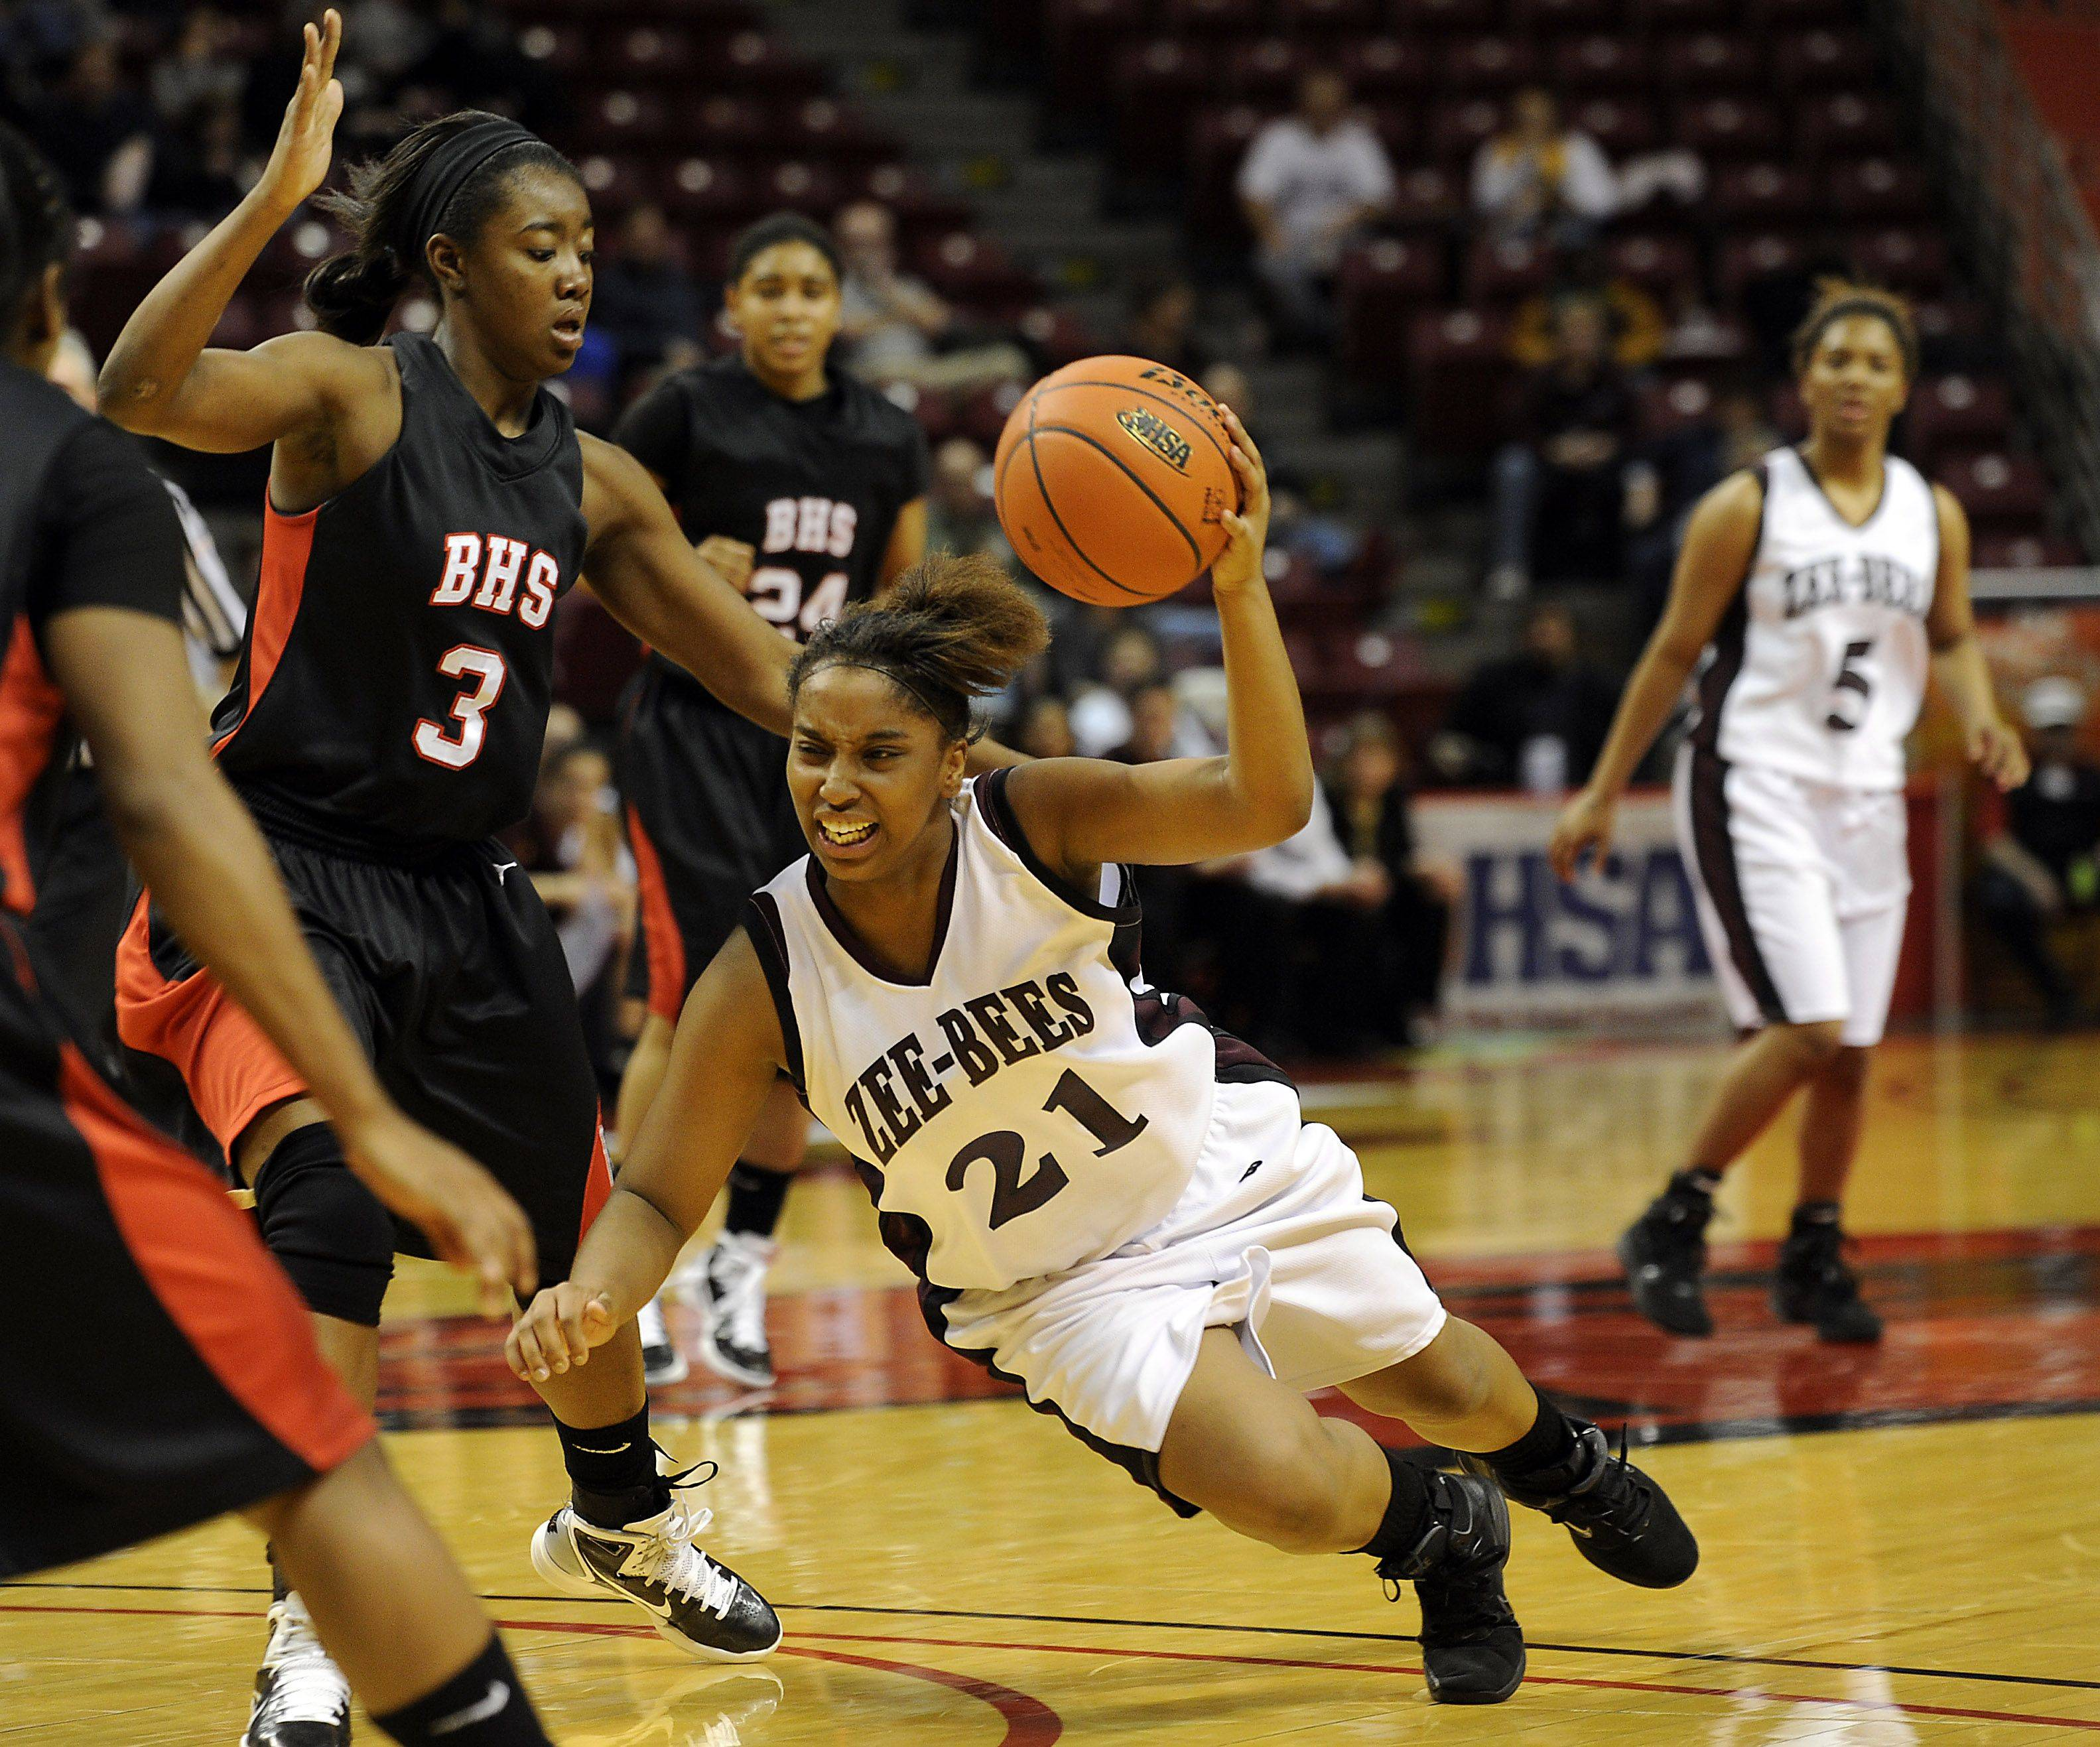 Zion-Benton's Samantha Rodriguez goes down as she drives for the lane as Bolingbrook's Kennedy Cattenhead provide strong defense in the girls Class 4A Girls Basketball Tournament at the Redbird Arena in Normal on Saturday.